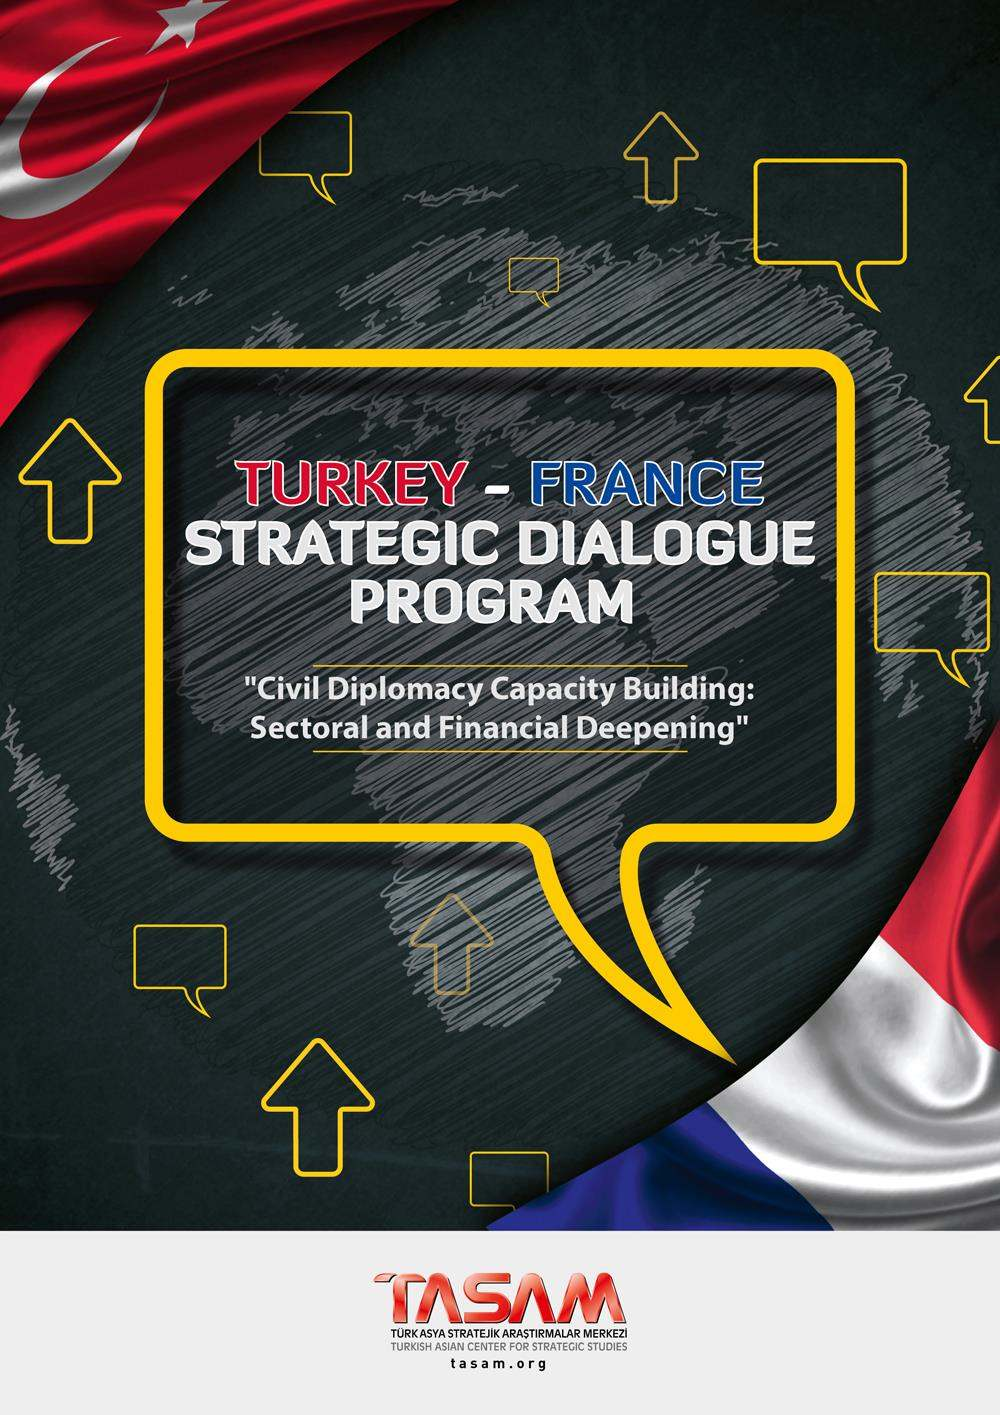 Turkey - France Strategic Dialogue Program